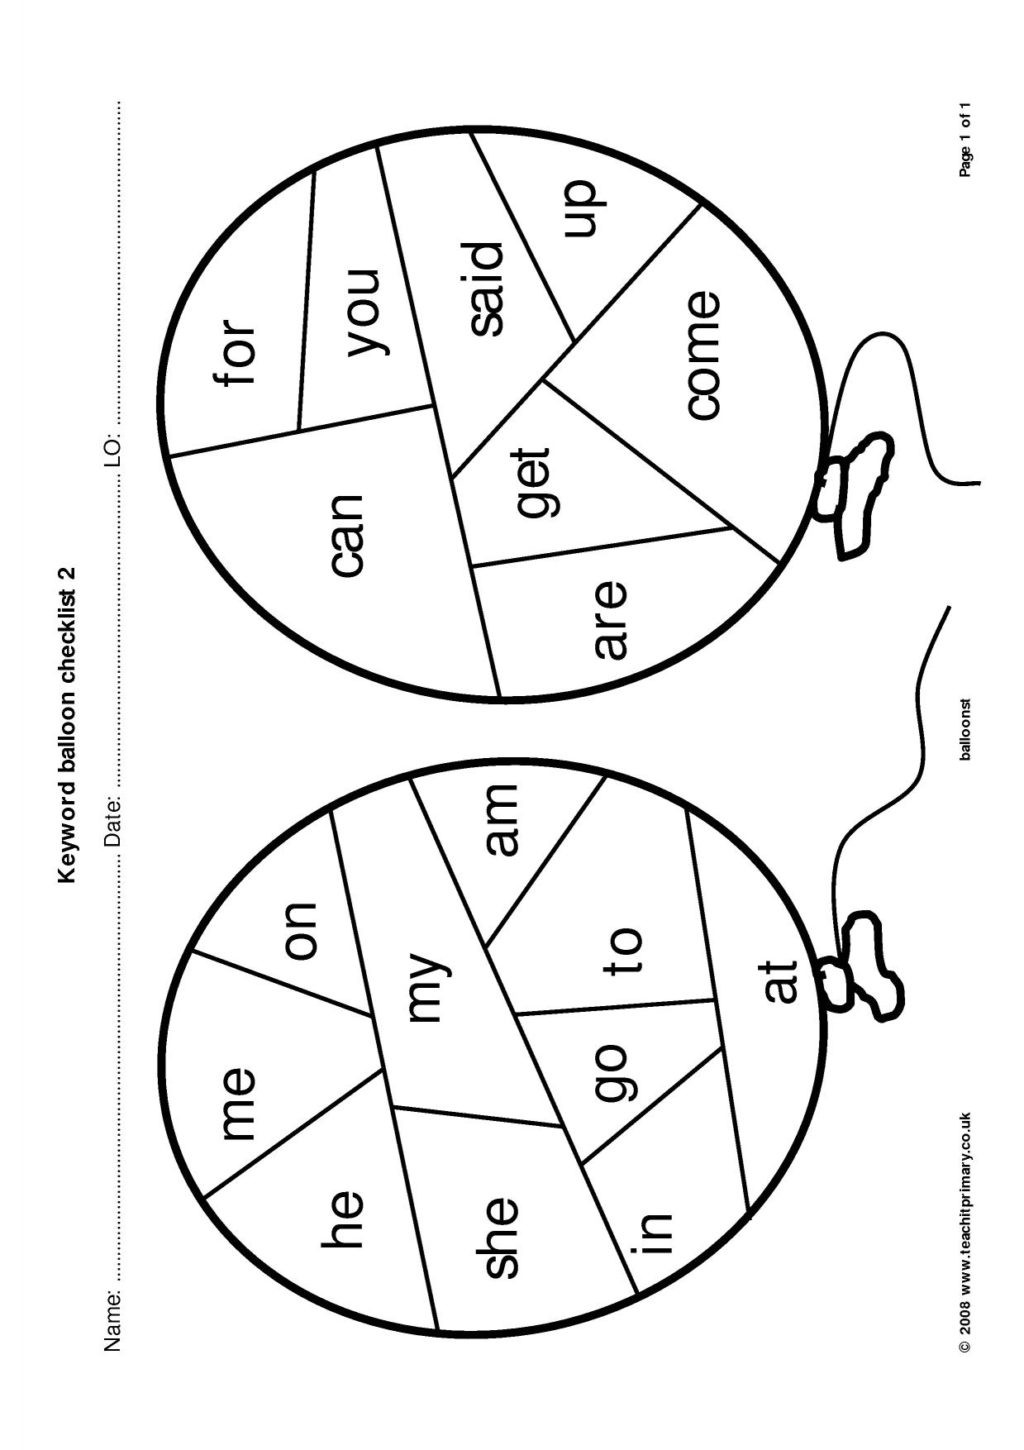 Multiplying Fractions Coloring Worksheets Theme Library